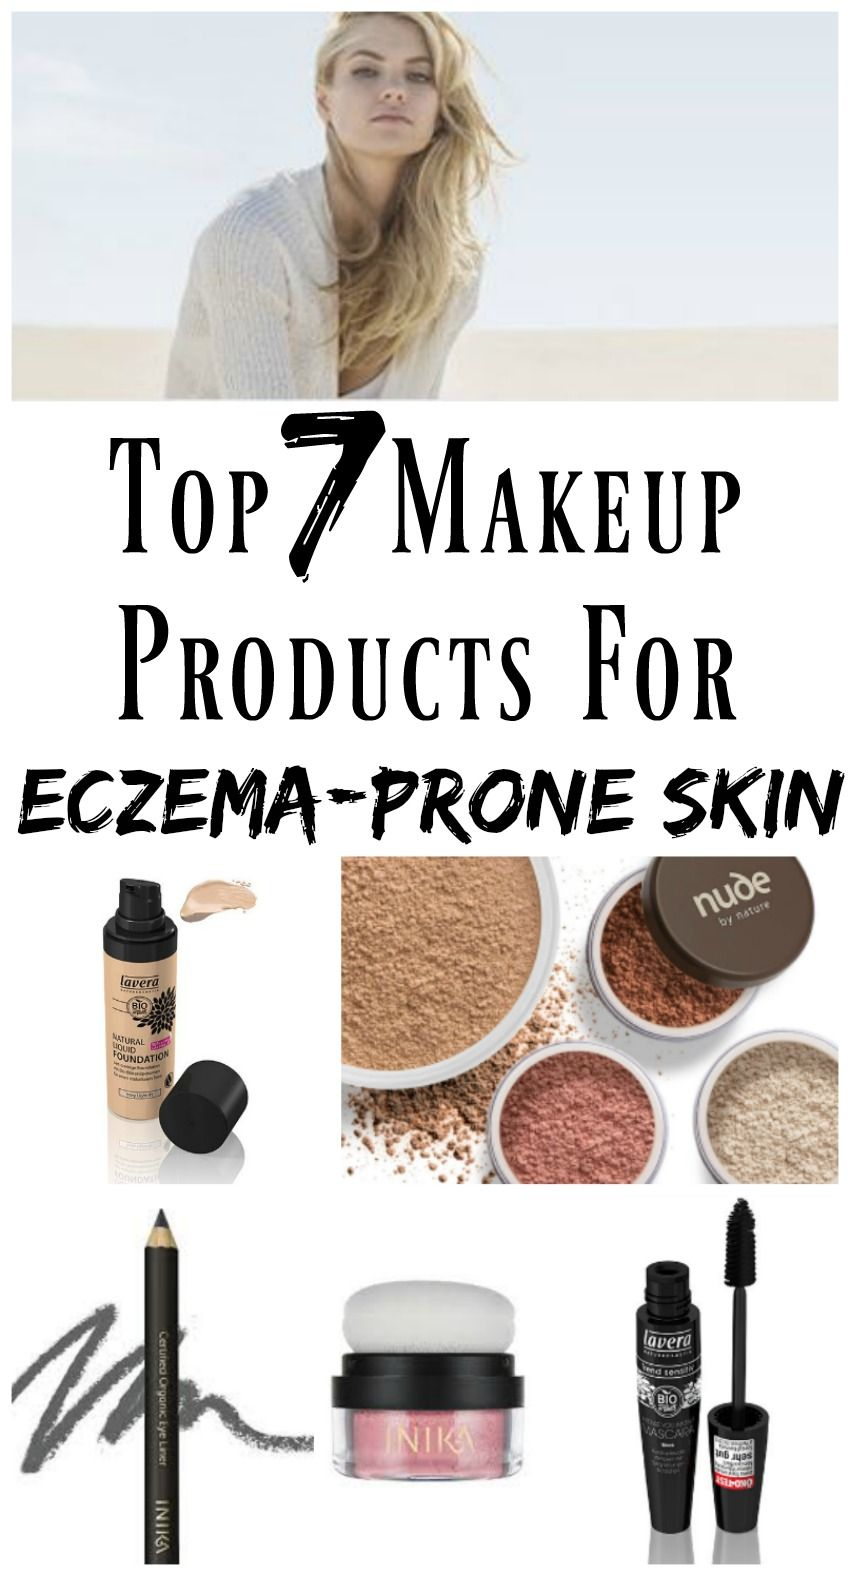 My Top 7 Makeup Products for Eczema Prone Skin. Eye